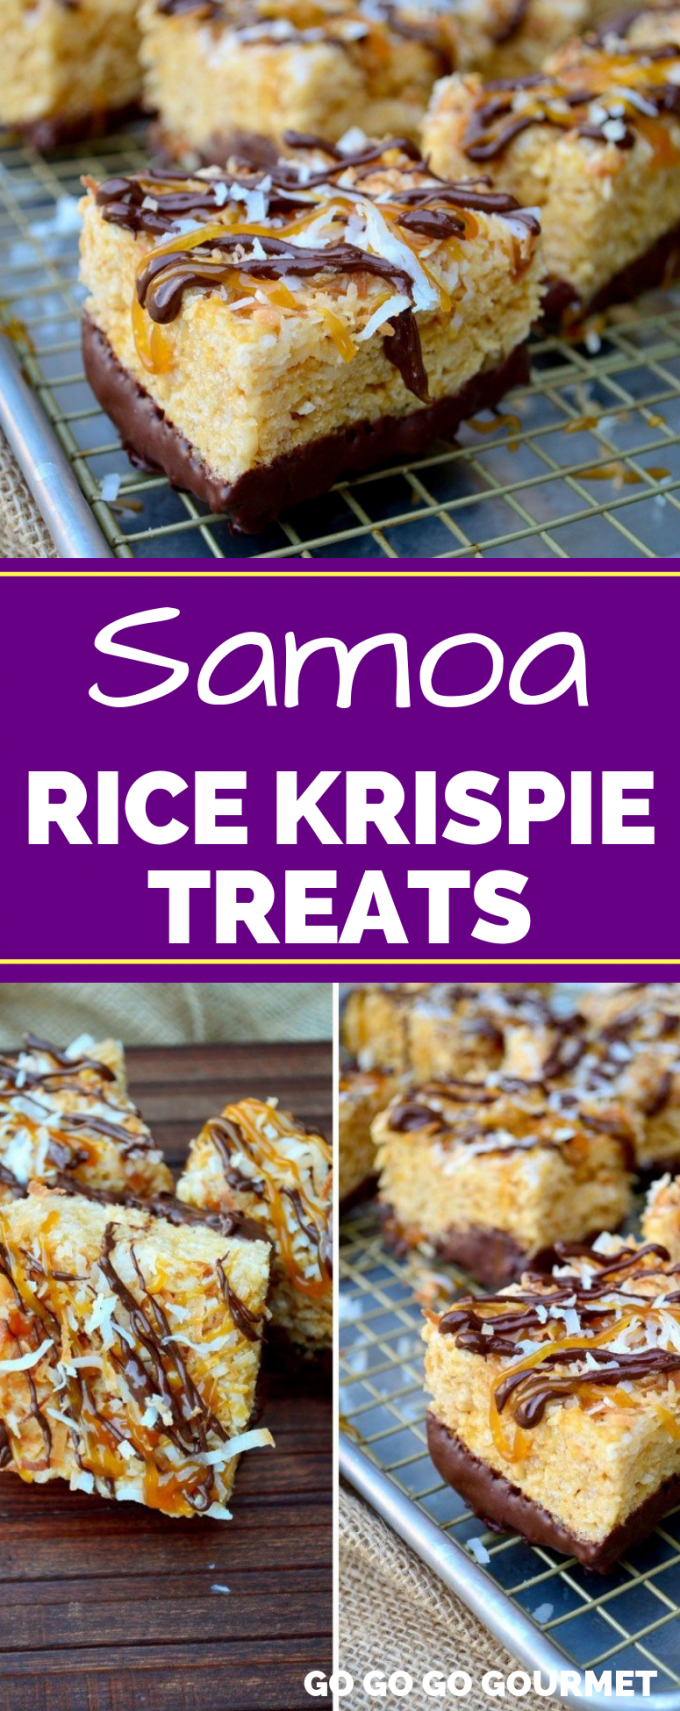 These Samoa Rice Krispie Treats are reminiscent of your favorite Girl Scout cookie! With coconut, caramel and chocolate, you just can't go wrong! #gogogogourmet #samoaricekrispietreats #ricekrispietreats #homemadericekrispietreats via @gogogogourmet